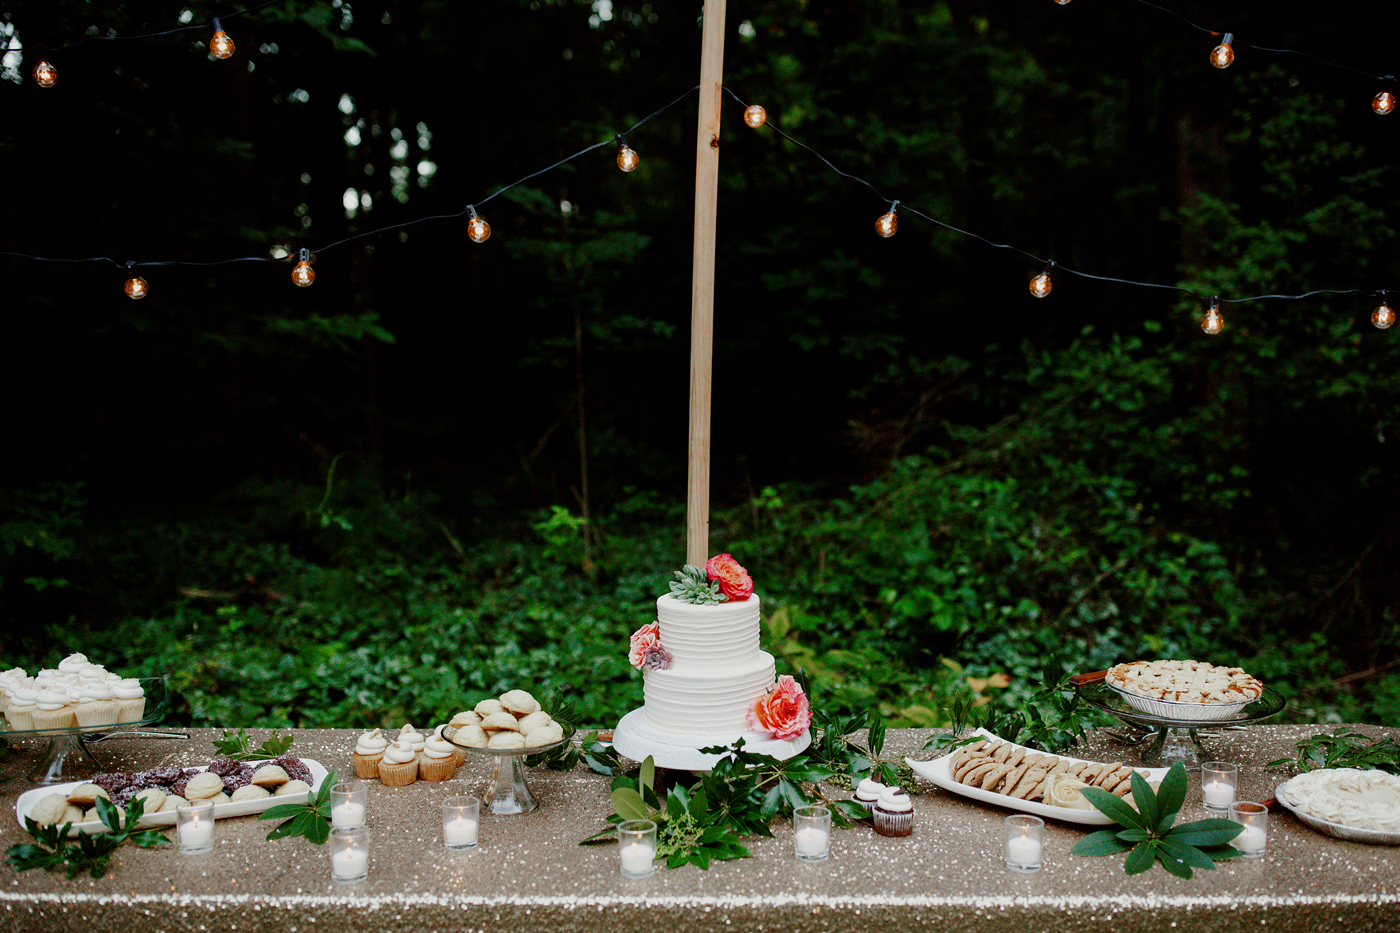 amandavanvels_backyardwedding_0531.jpg